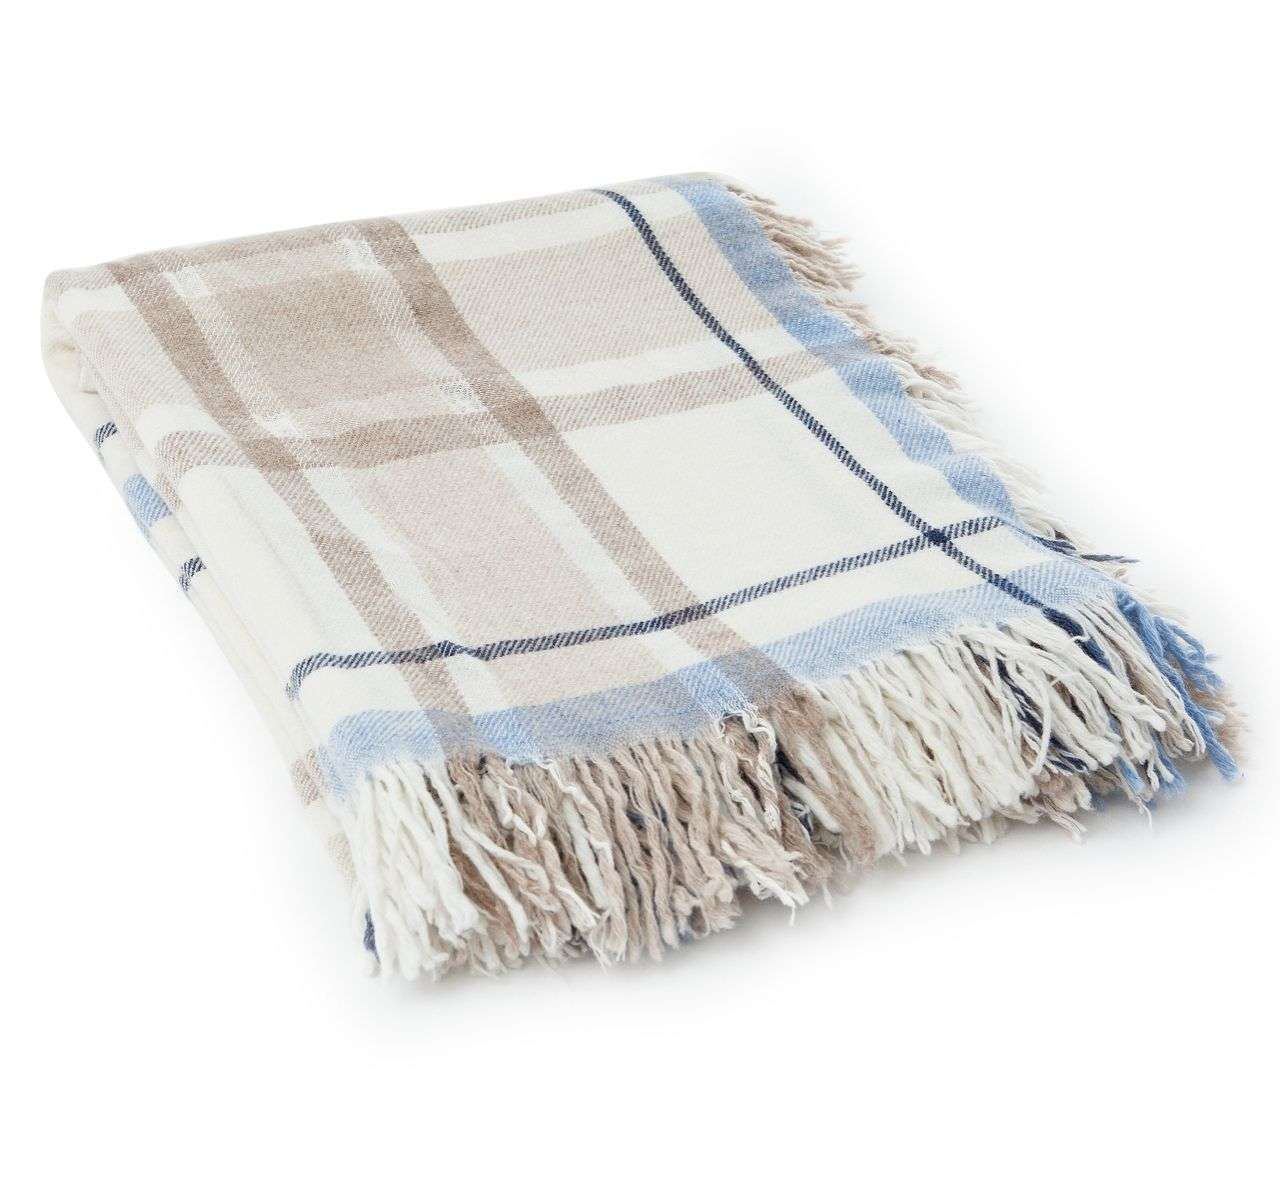 Exquisit Decke Beige Beste Wahl Lexington Wool Checked Beige/blau | Decken |